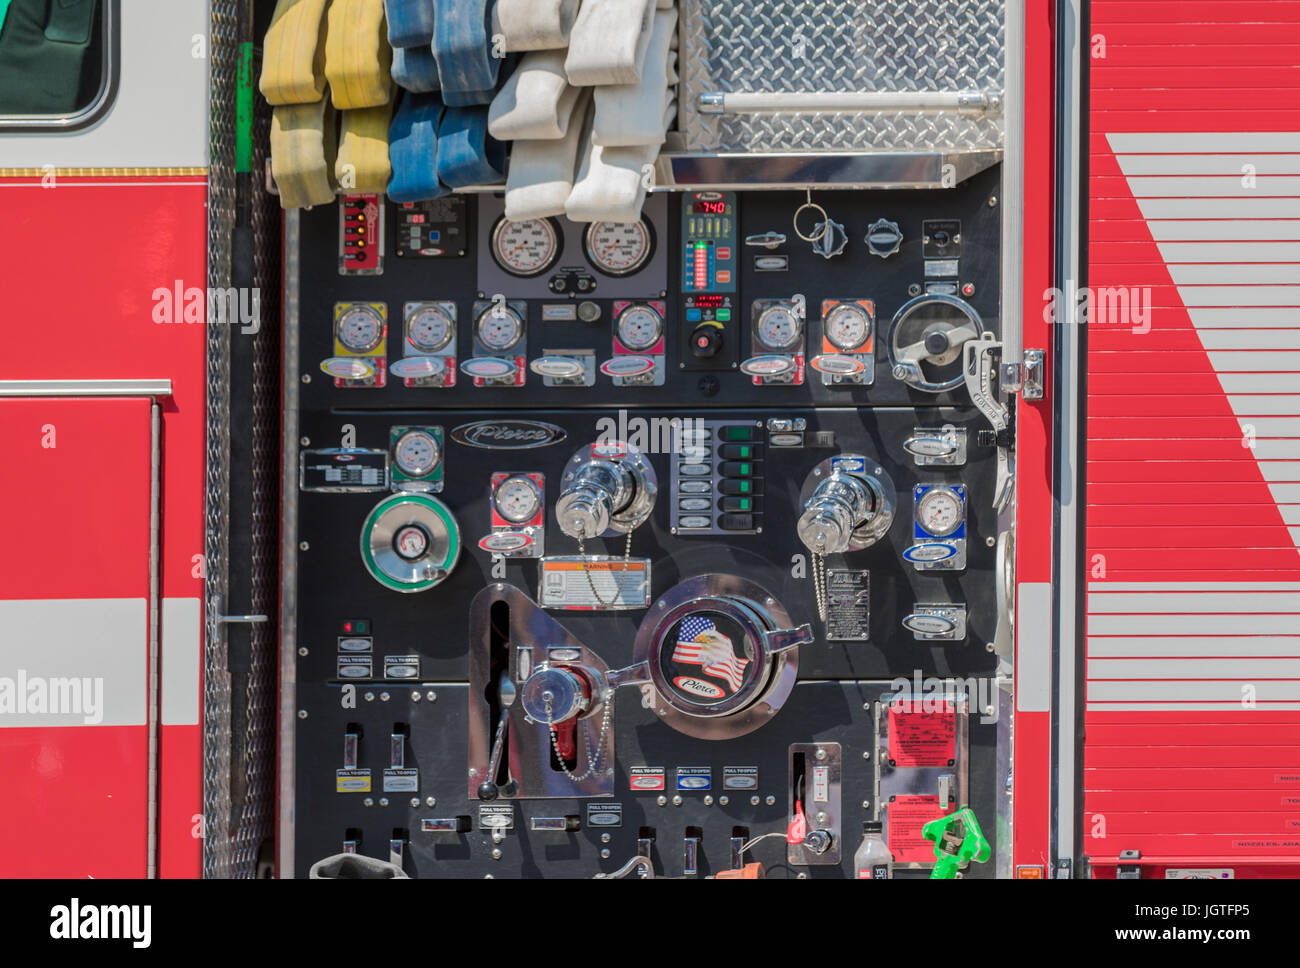 detail of the gauges and dials on a large fire truck - Stock Image